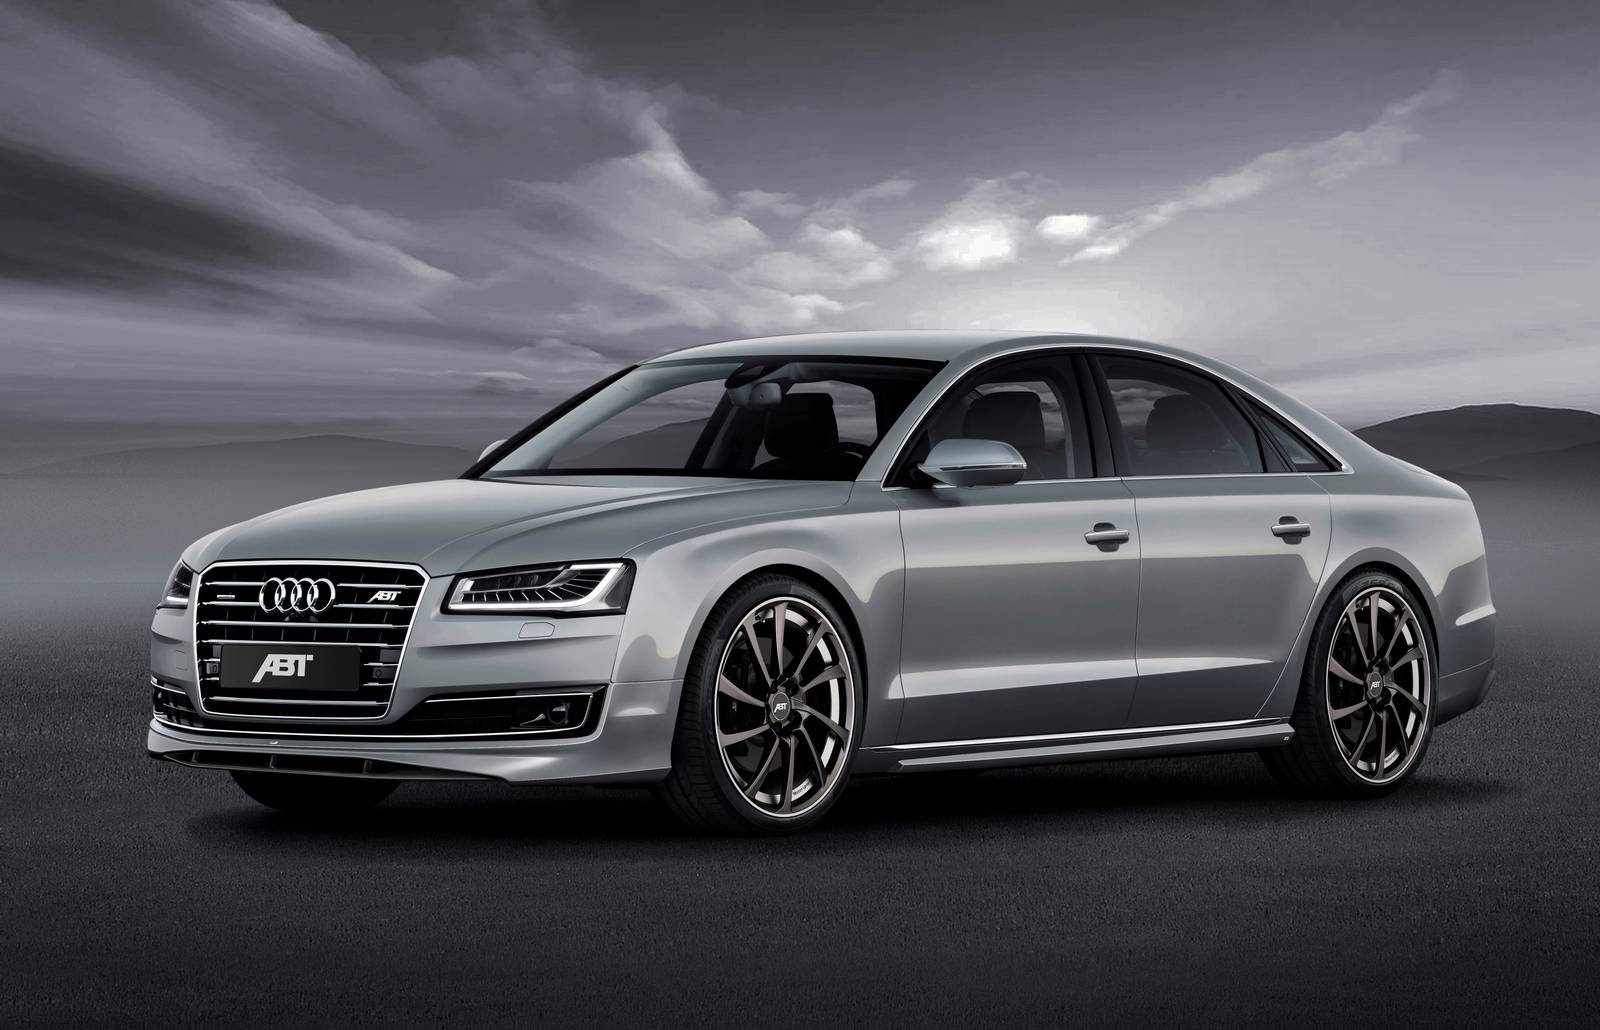 Official 2015 Abt Audi A8 Gtspirit